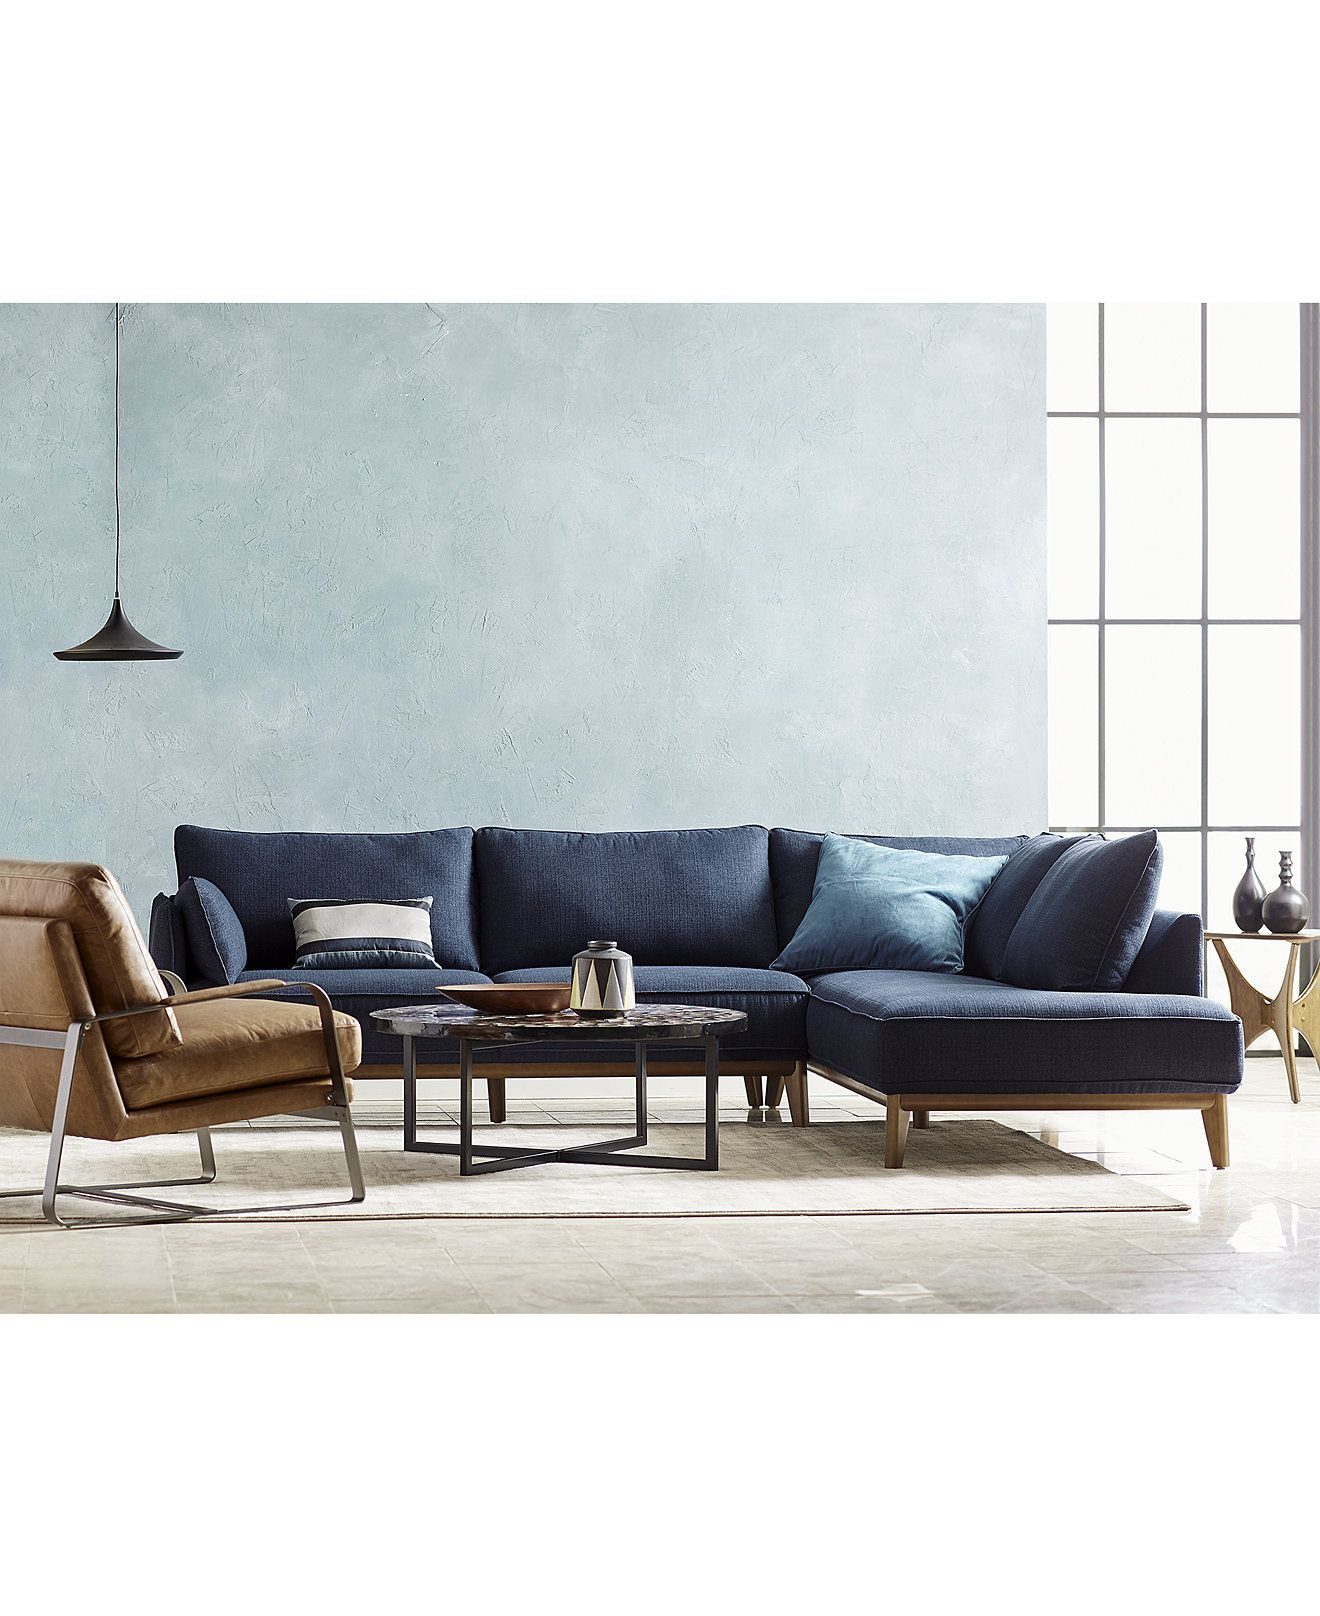 Macys Furnitur: Jollene Fabric Sectional And Sofa Collection, Created For